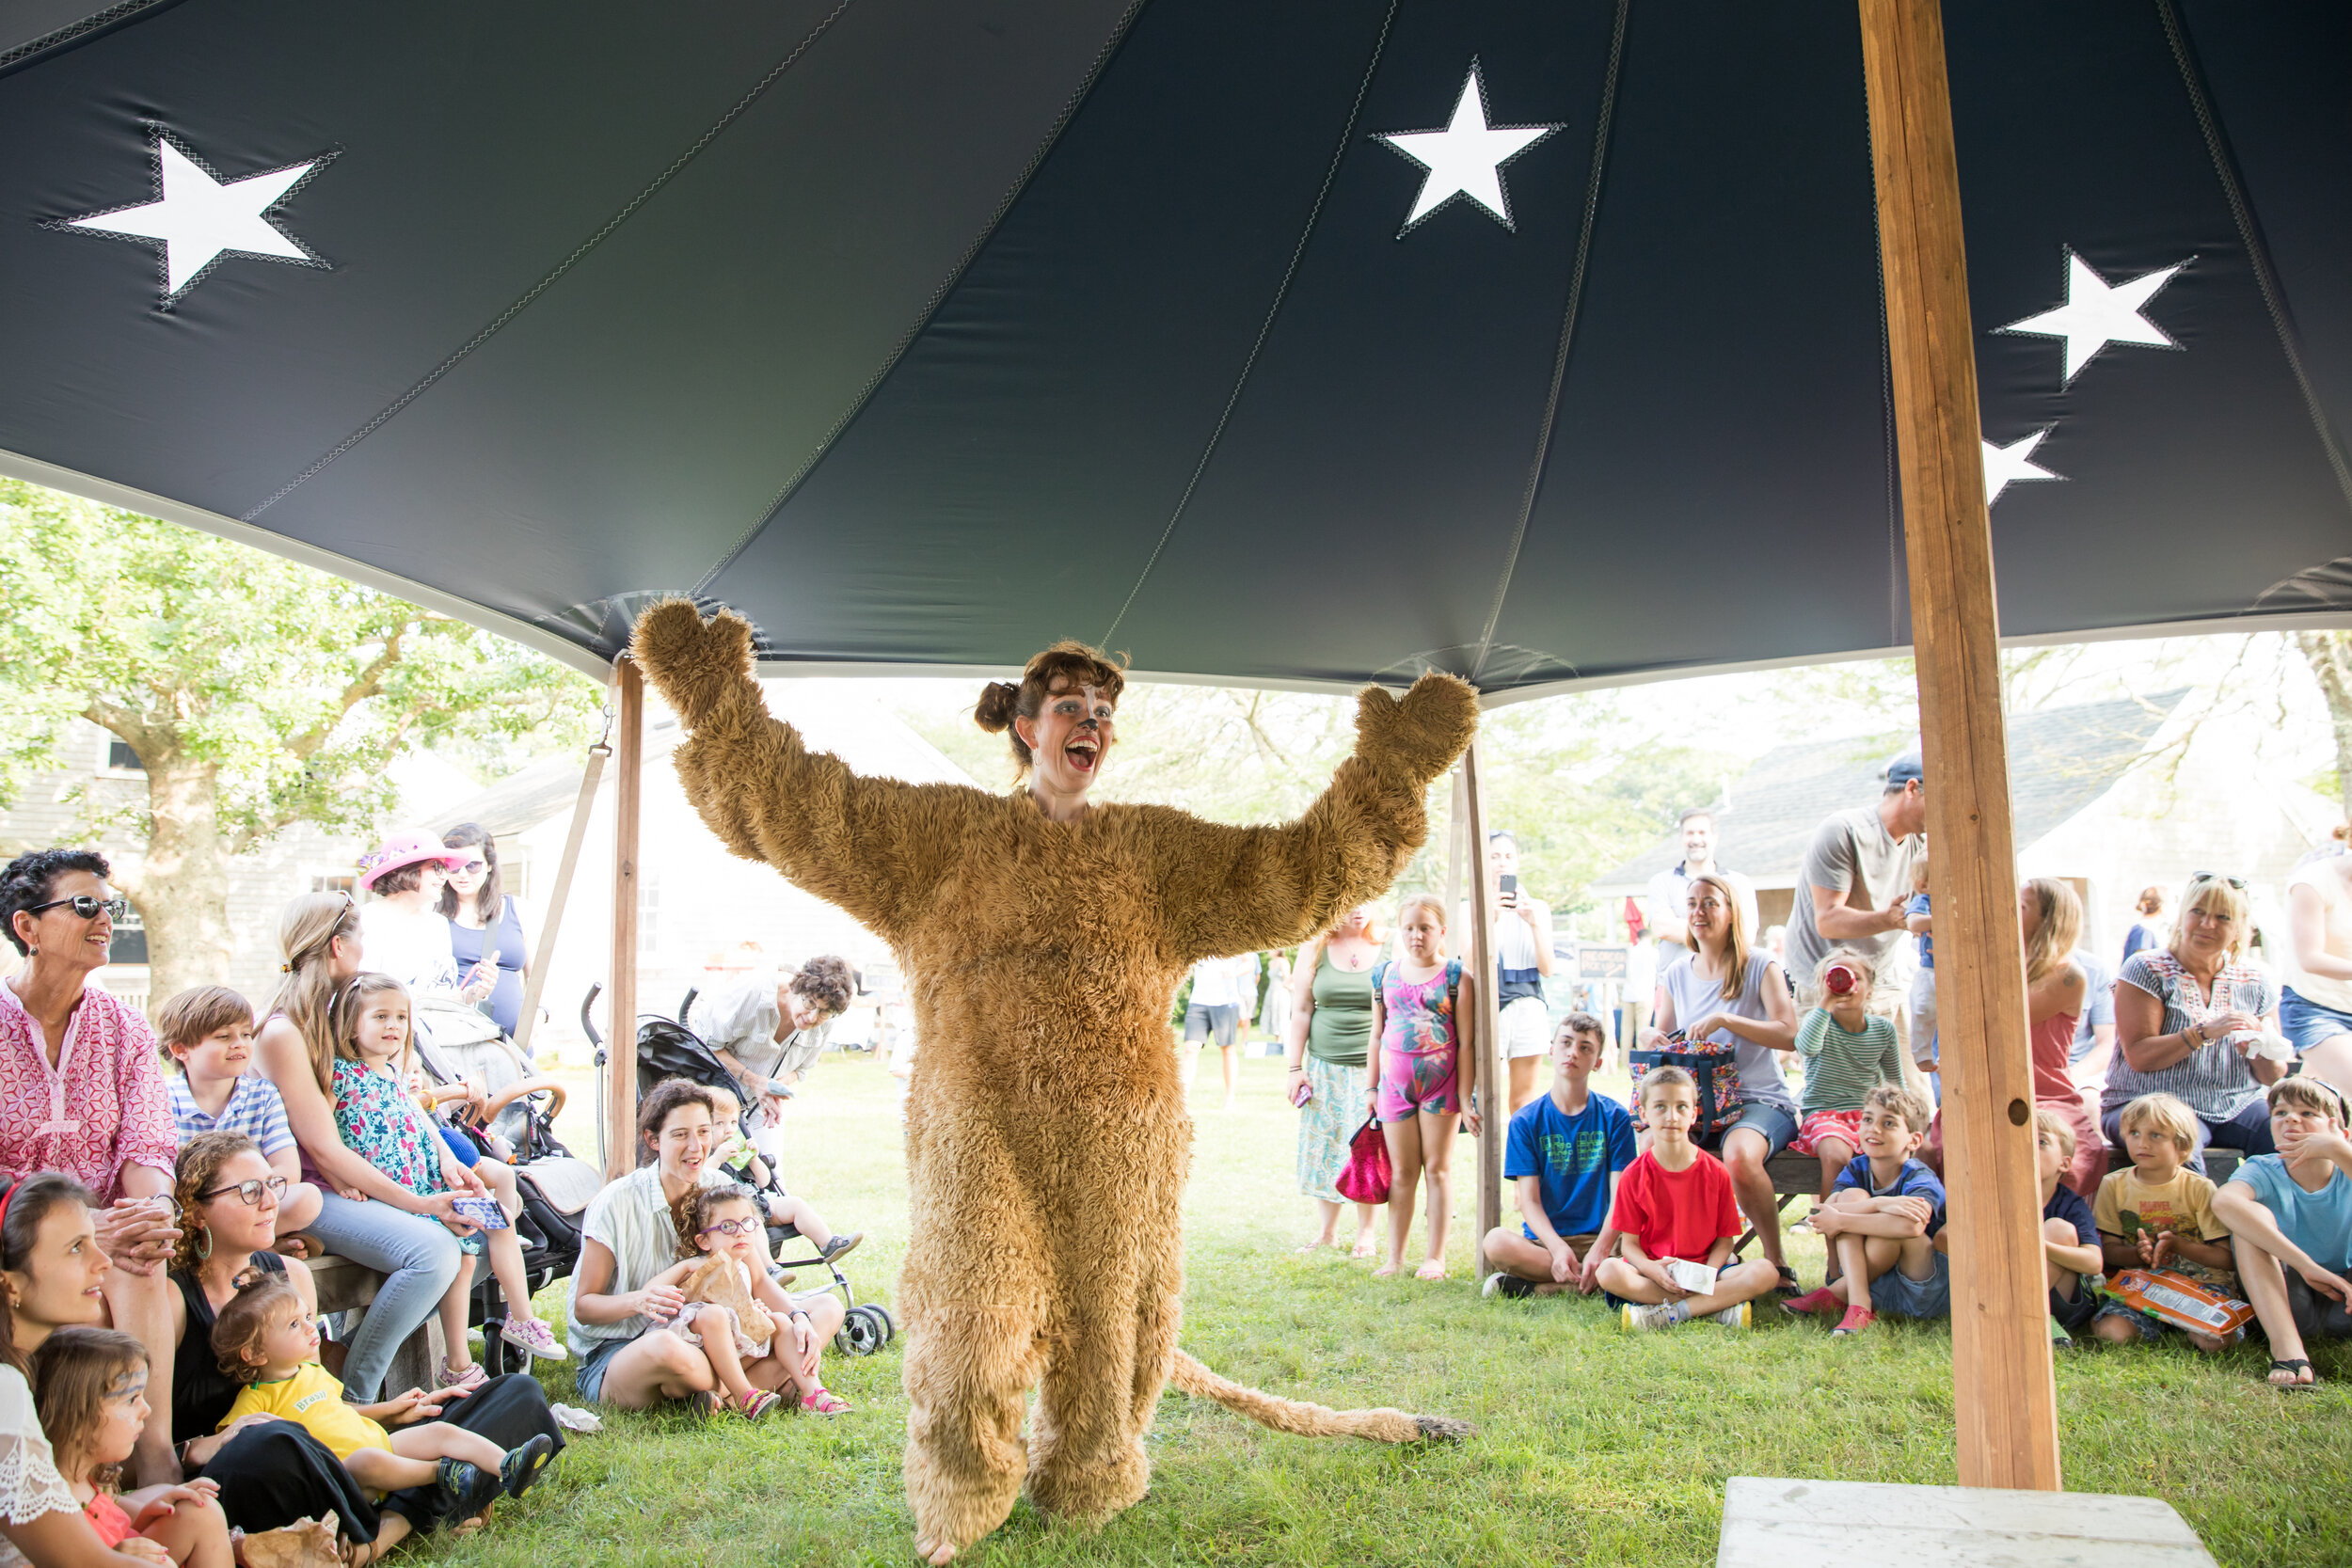 Leslie the Lion performs in a show under the Big Top at a free Cinema Circus. Photo by Maria Thibodeau.